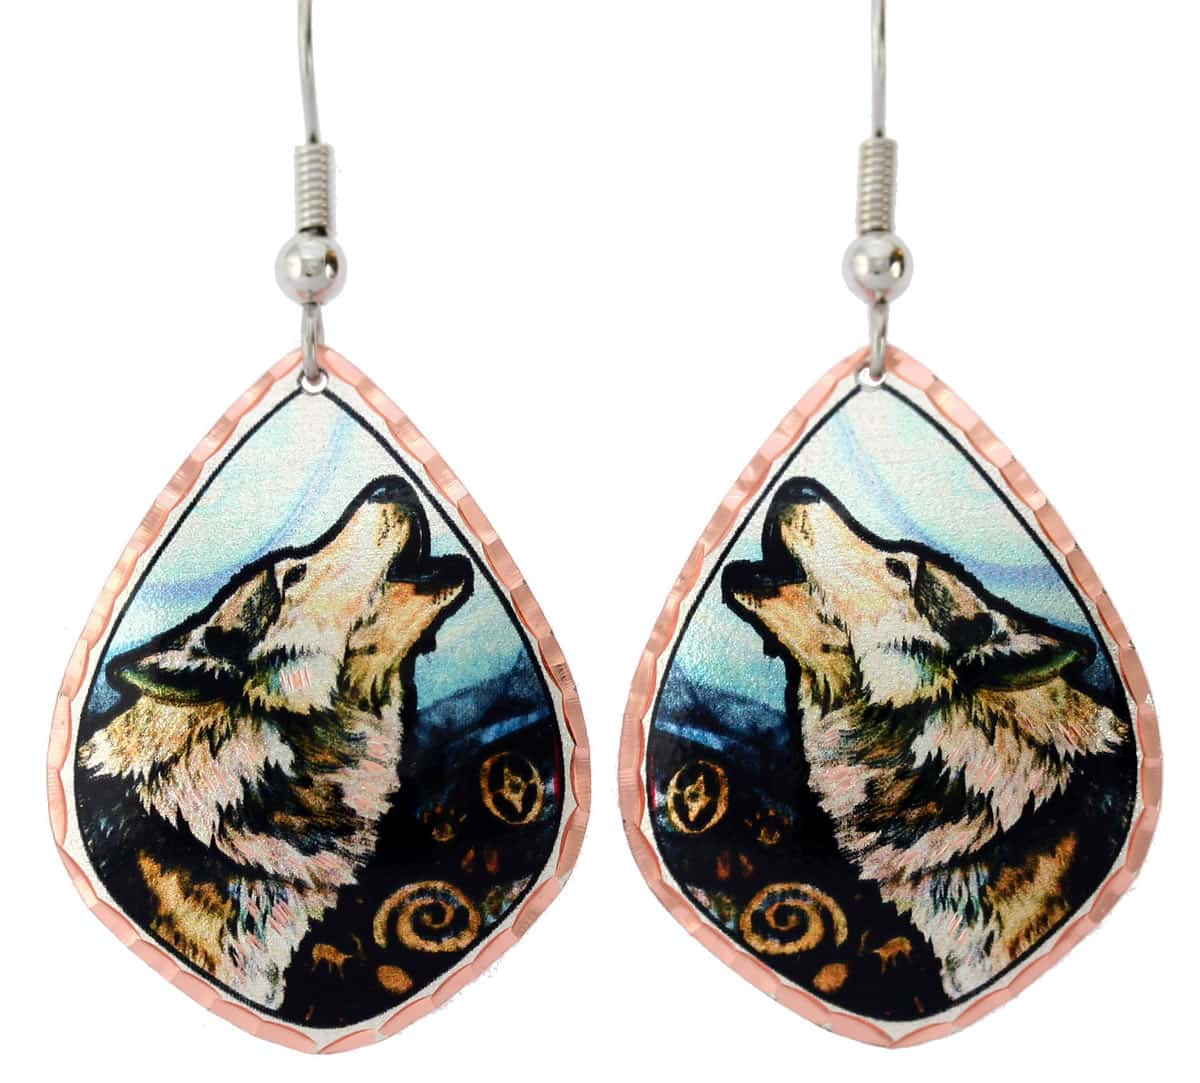 Impressive howling wolf earrings, everything you expect from precious handmade jewelry